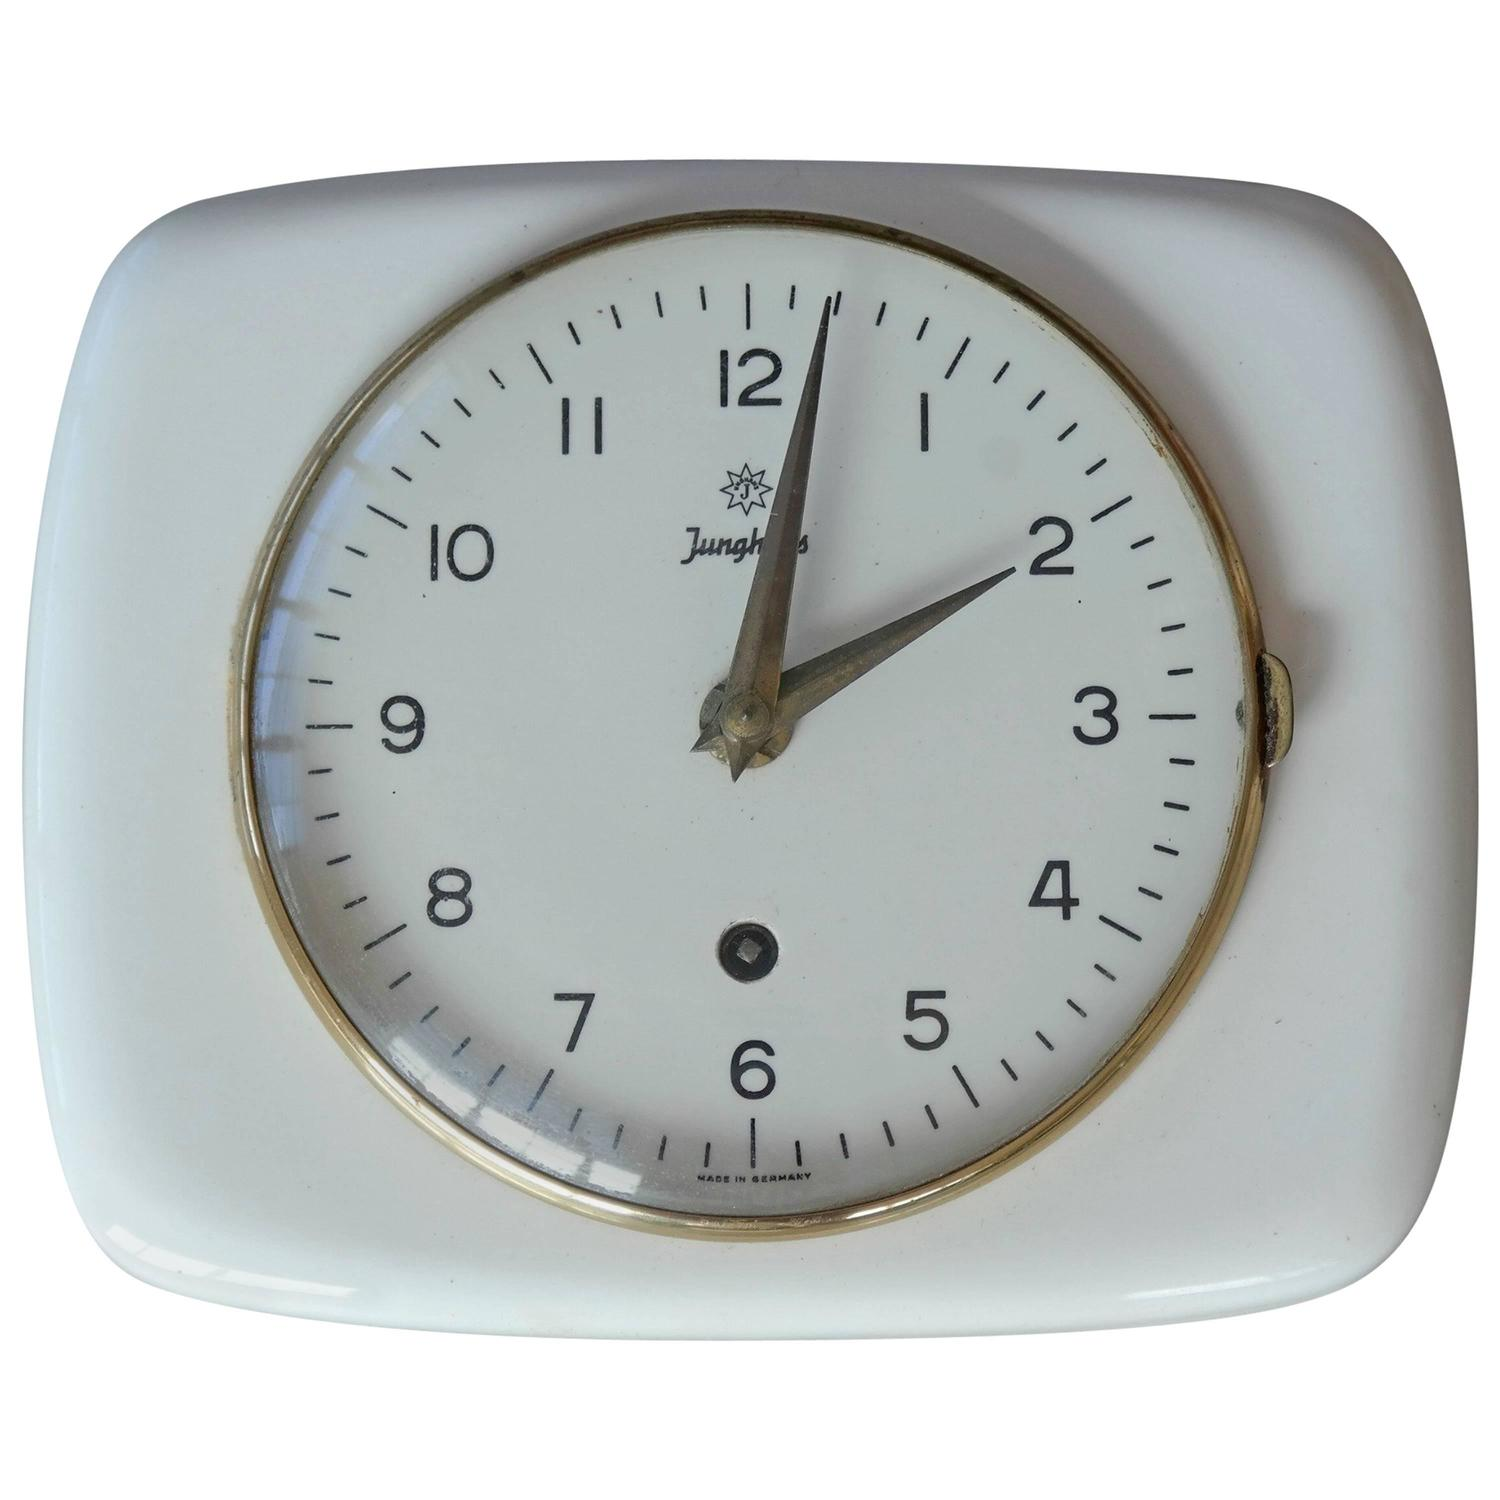 Junghans max bill designed mid century mechanical wall clock for junghans max bill designed mid century mechanical wall clock for sale at 1stdibs amipublicfo Image collections